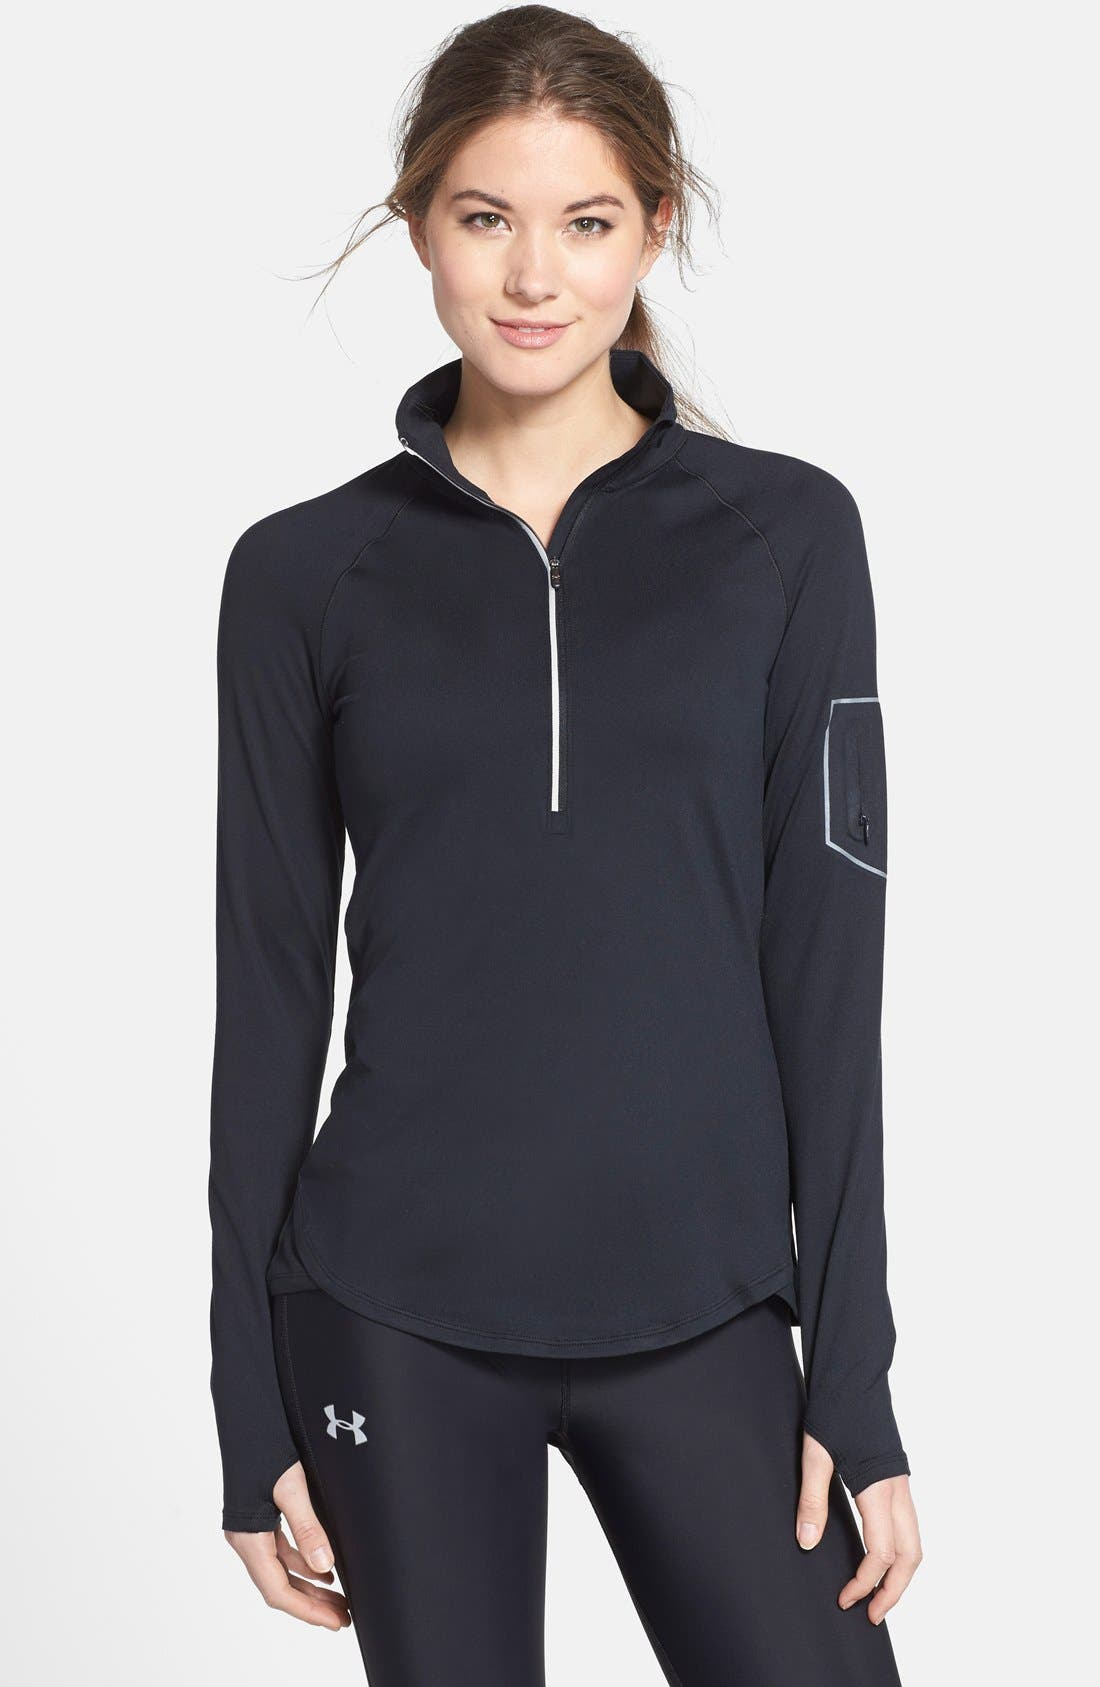 Main Image - Under Armour 'Fly Fast' Half Zip Long Sleeve Top